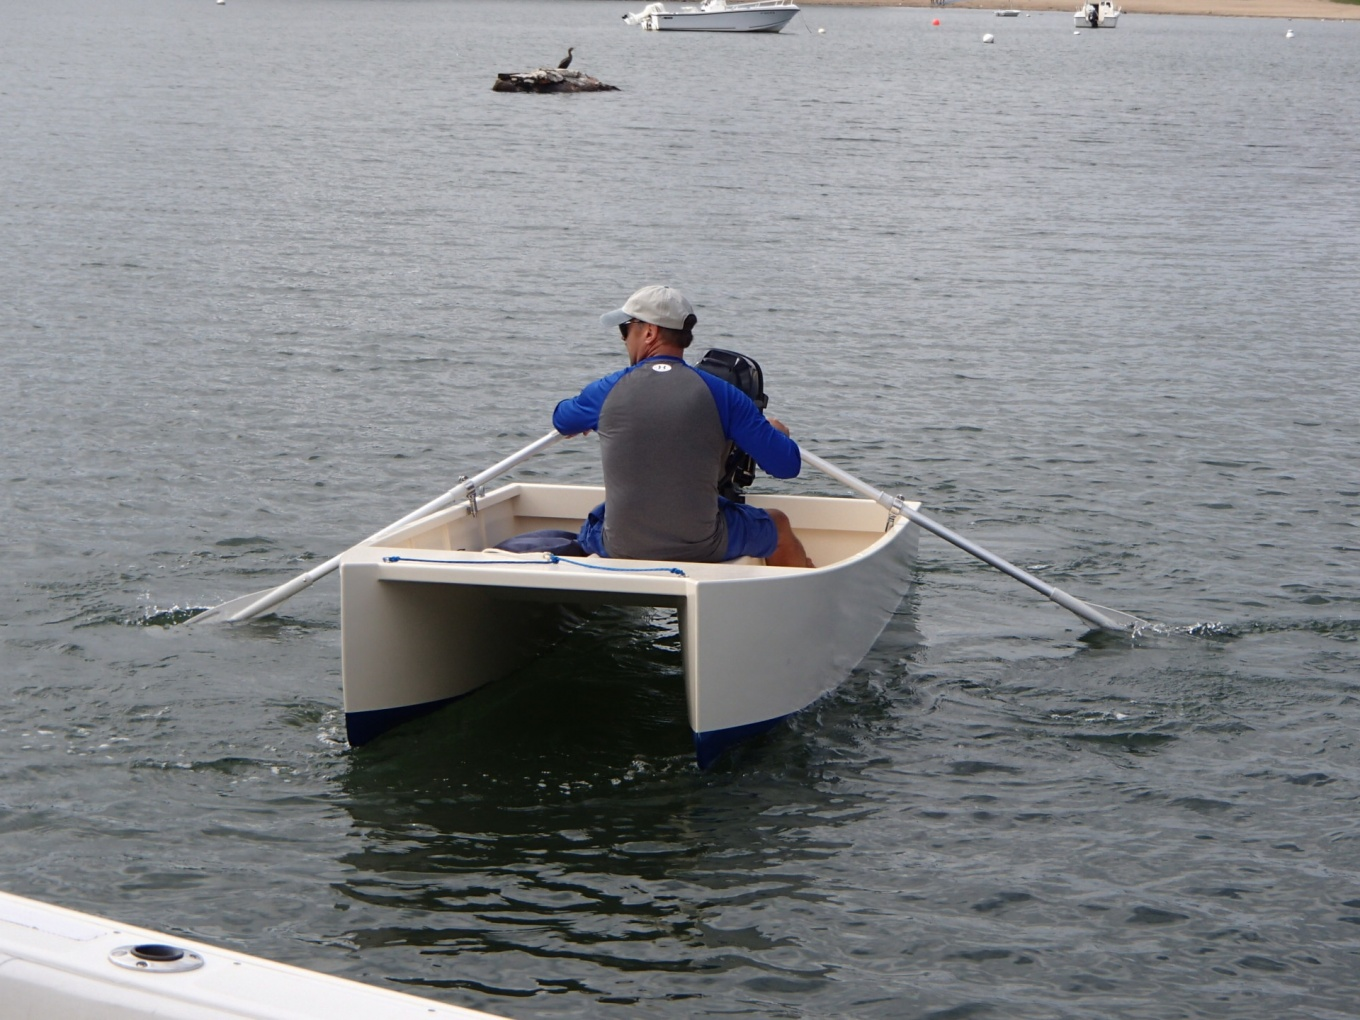 Click image for larger version  Name:Catatude Cat Dinghy3.jpg Views:219 Size:424.1 KB ID:71577